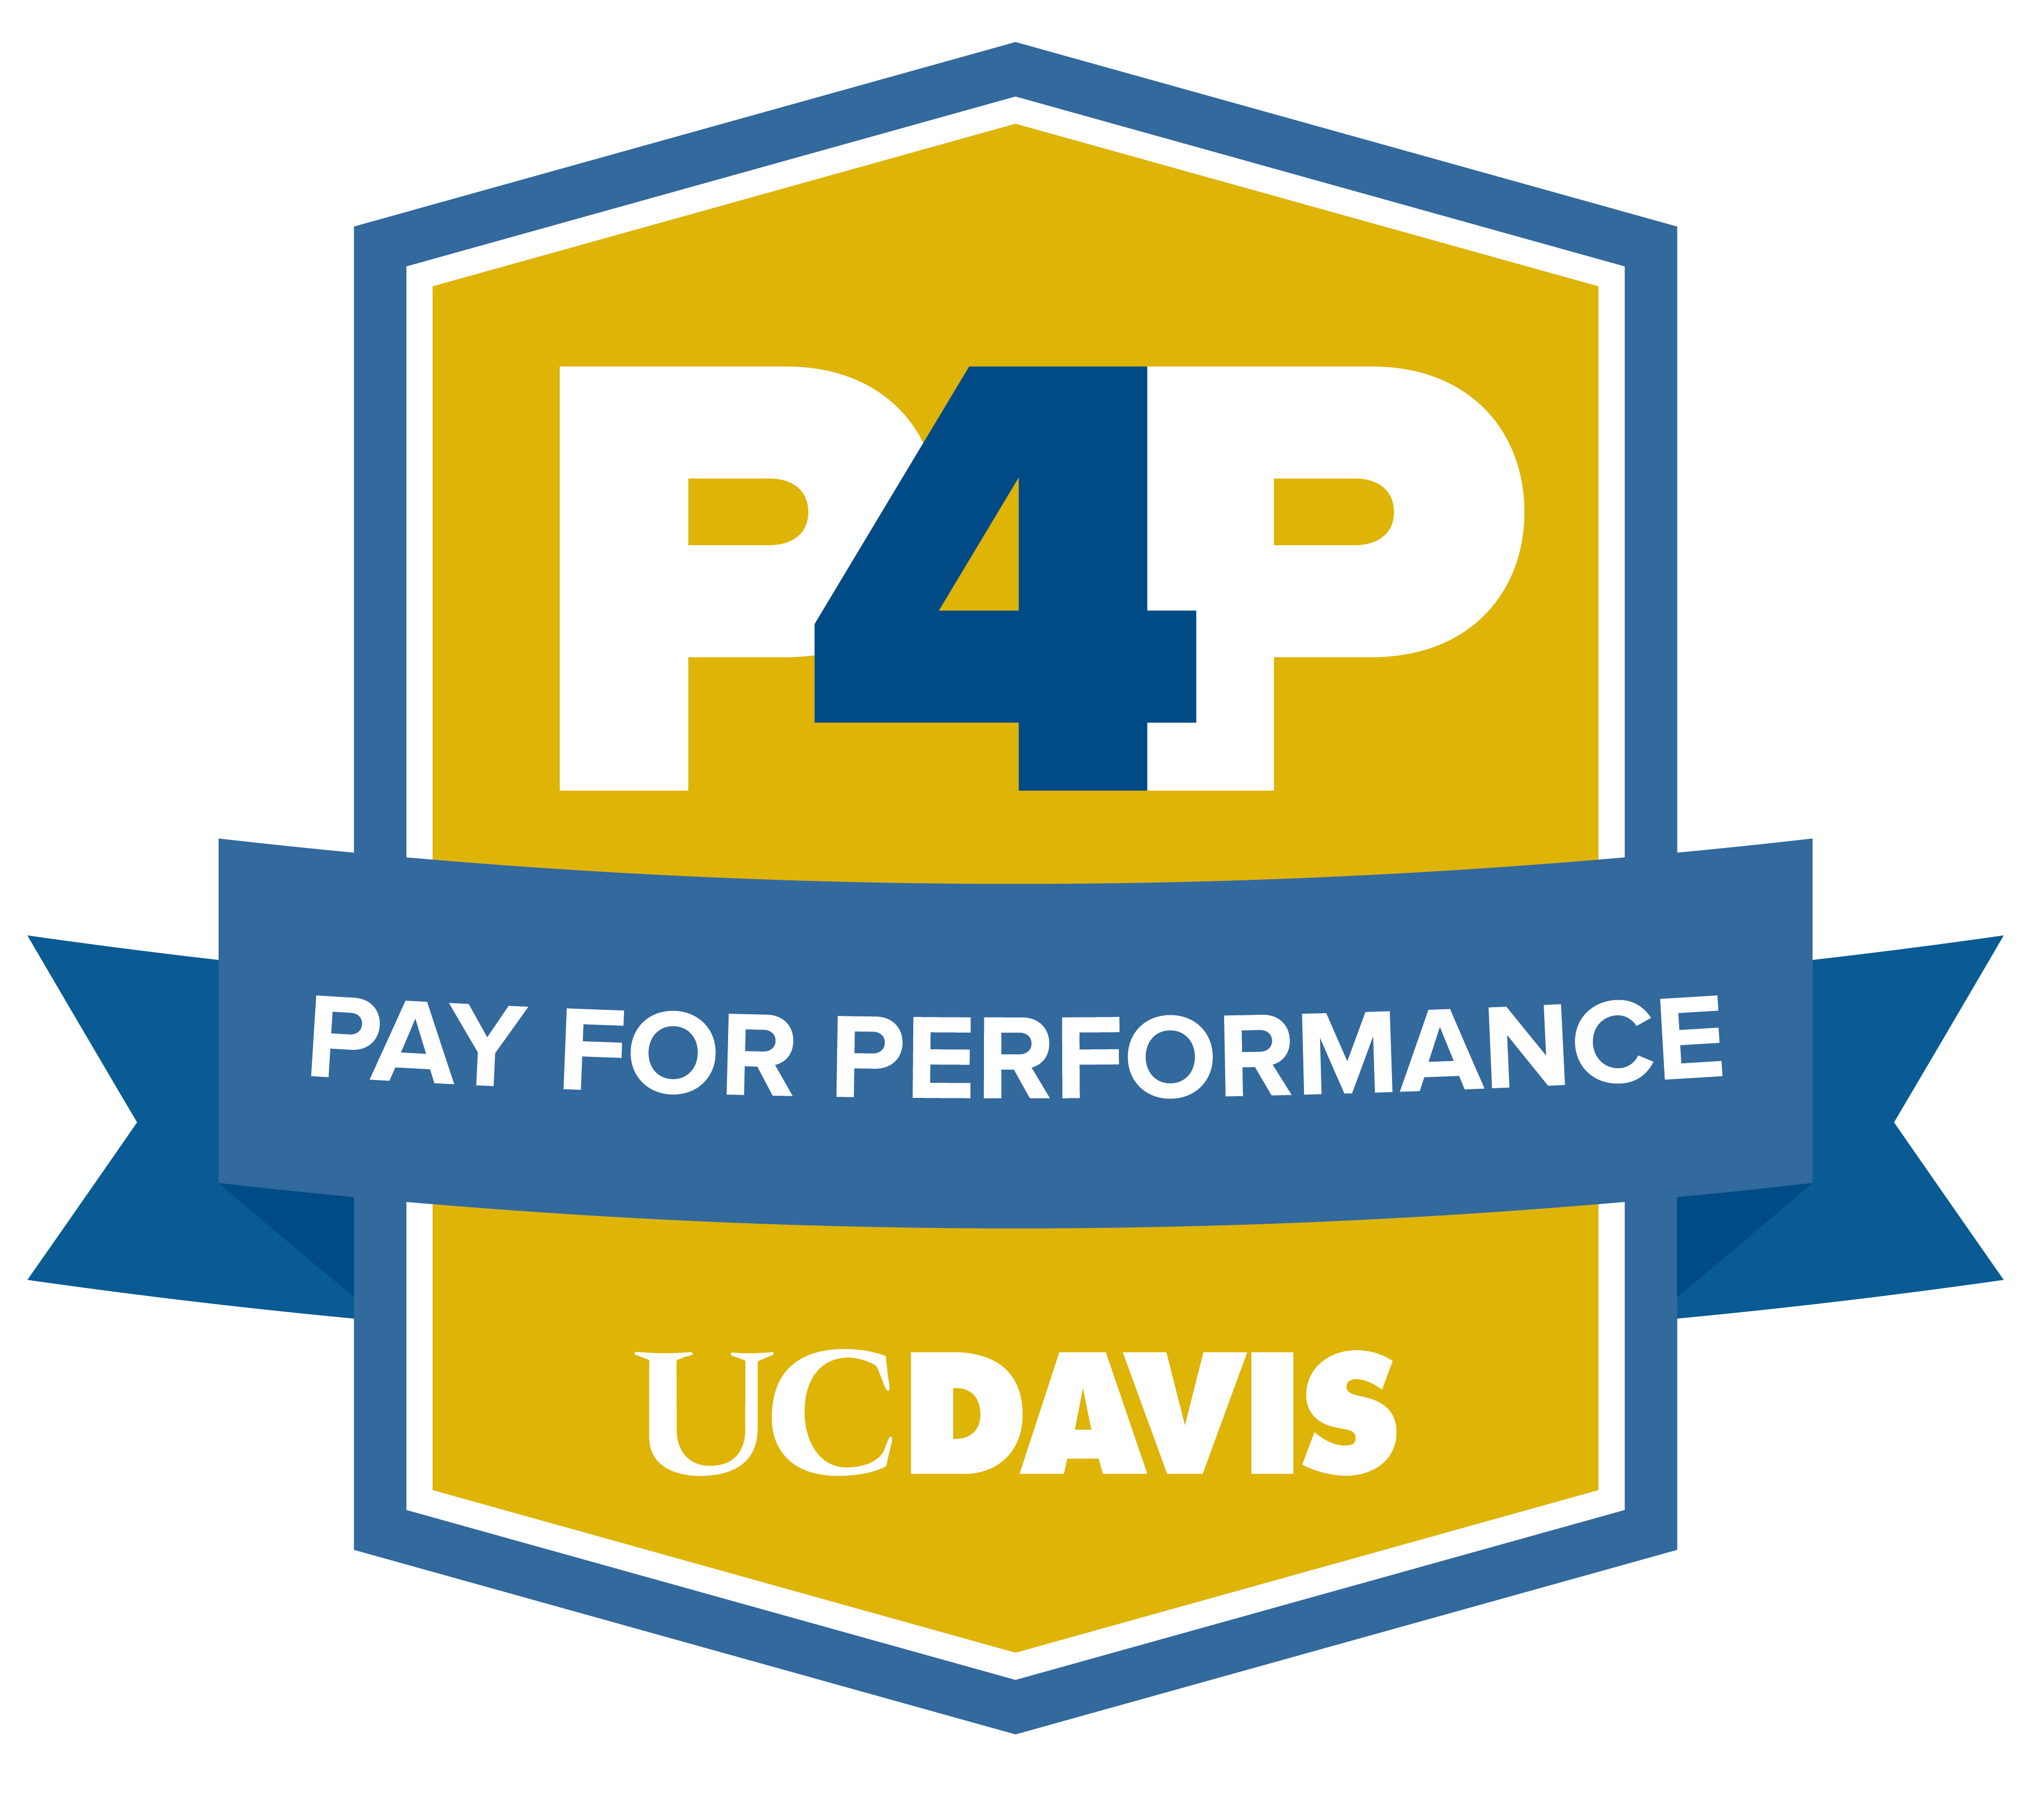 logo of uc davis pay for performance program